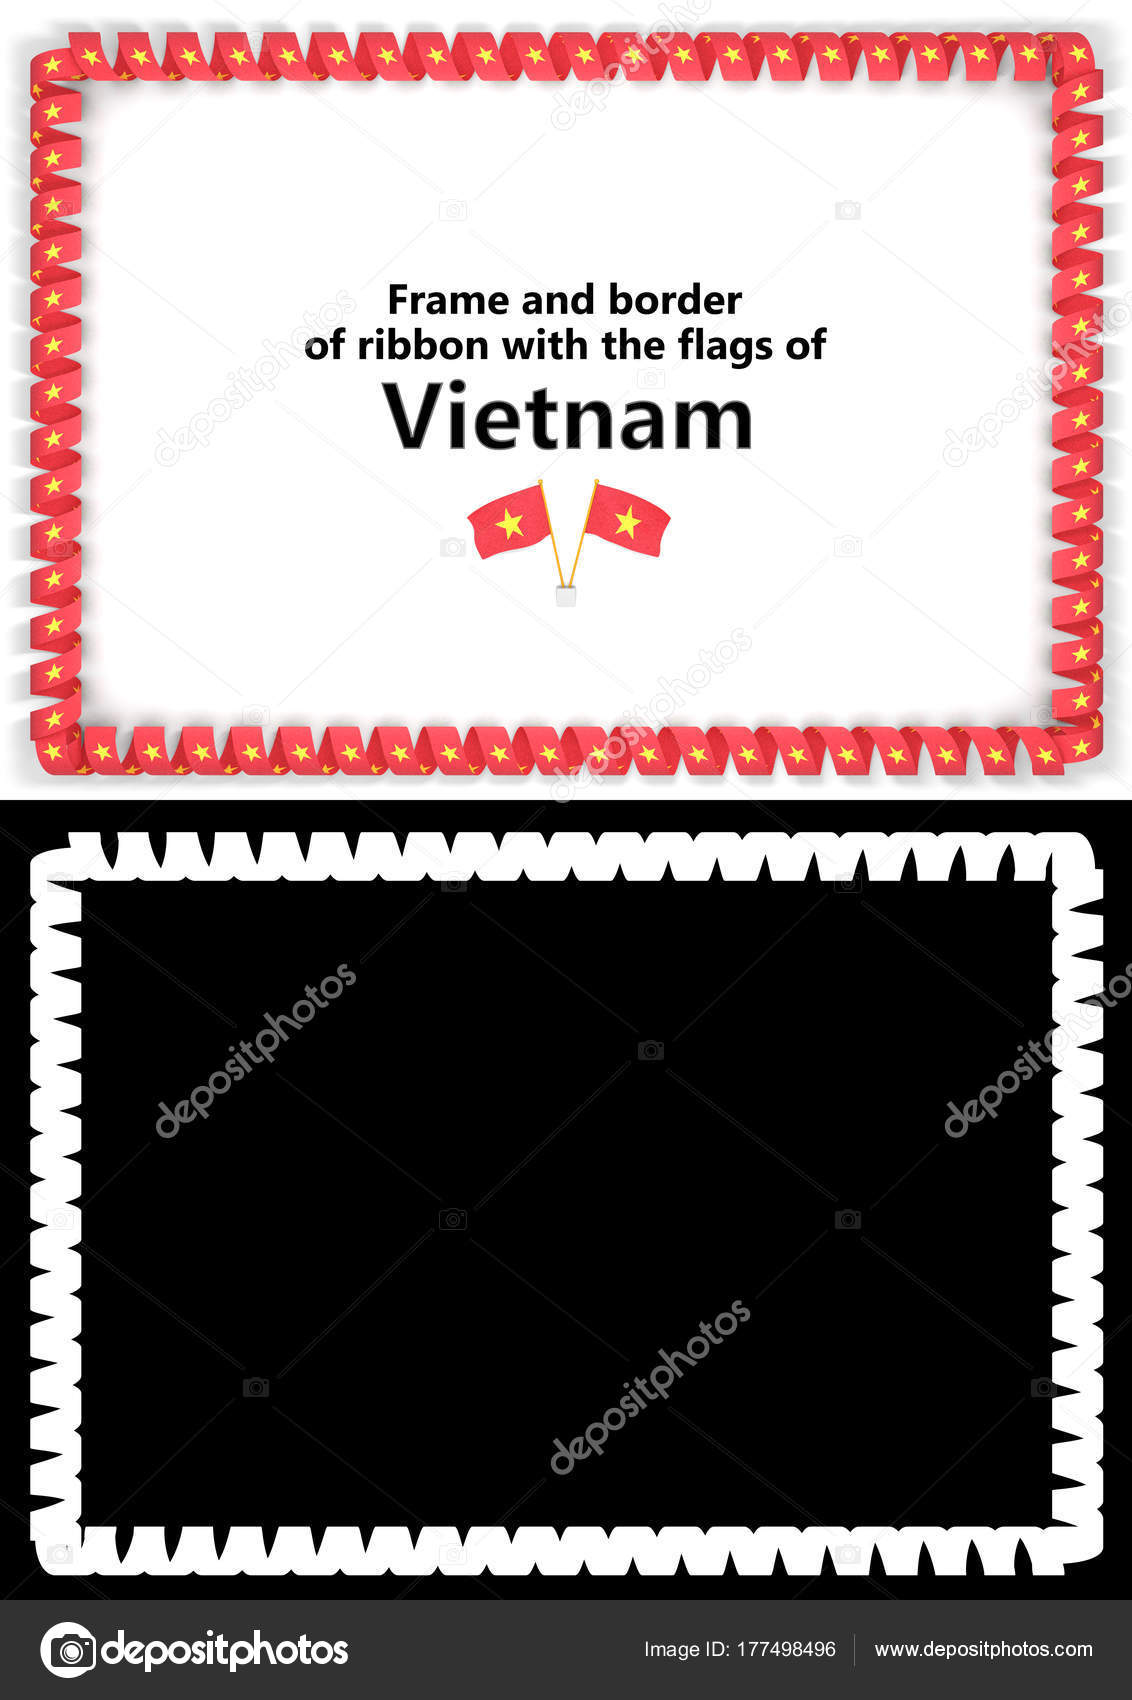 Frame And Border Of Ribbon With The Vietnam Flag For Diplomas,  Congratulations, Certificates.  Congratulations Certificates